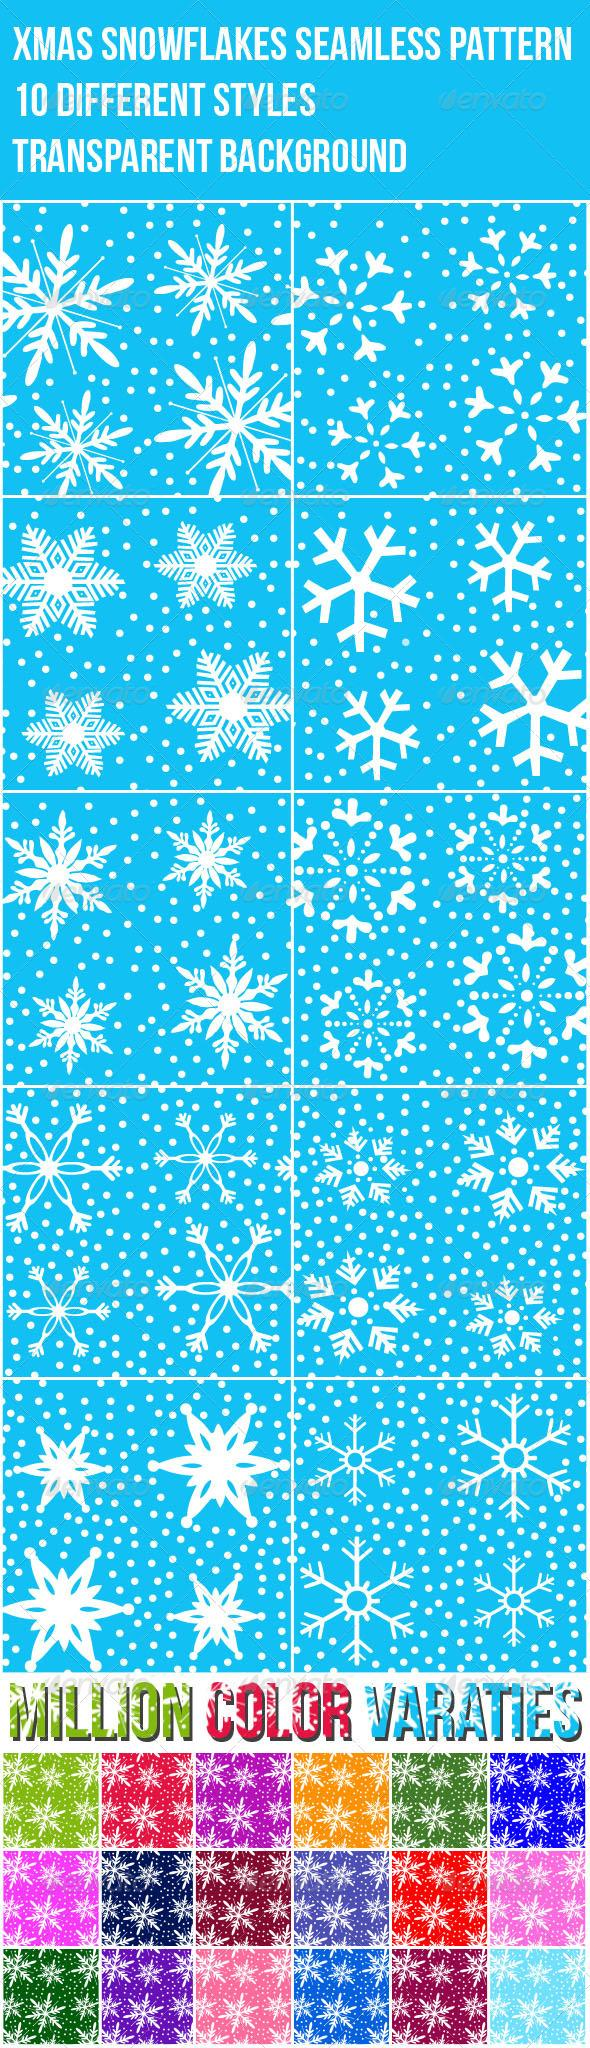 Snowflakes Christmas Photoshop Patterns